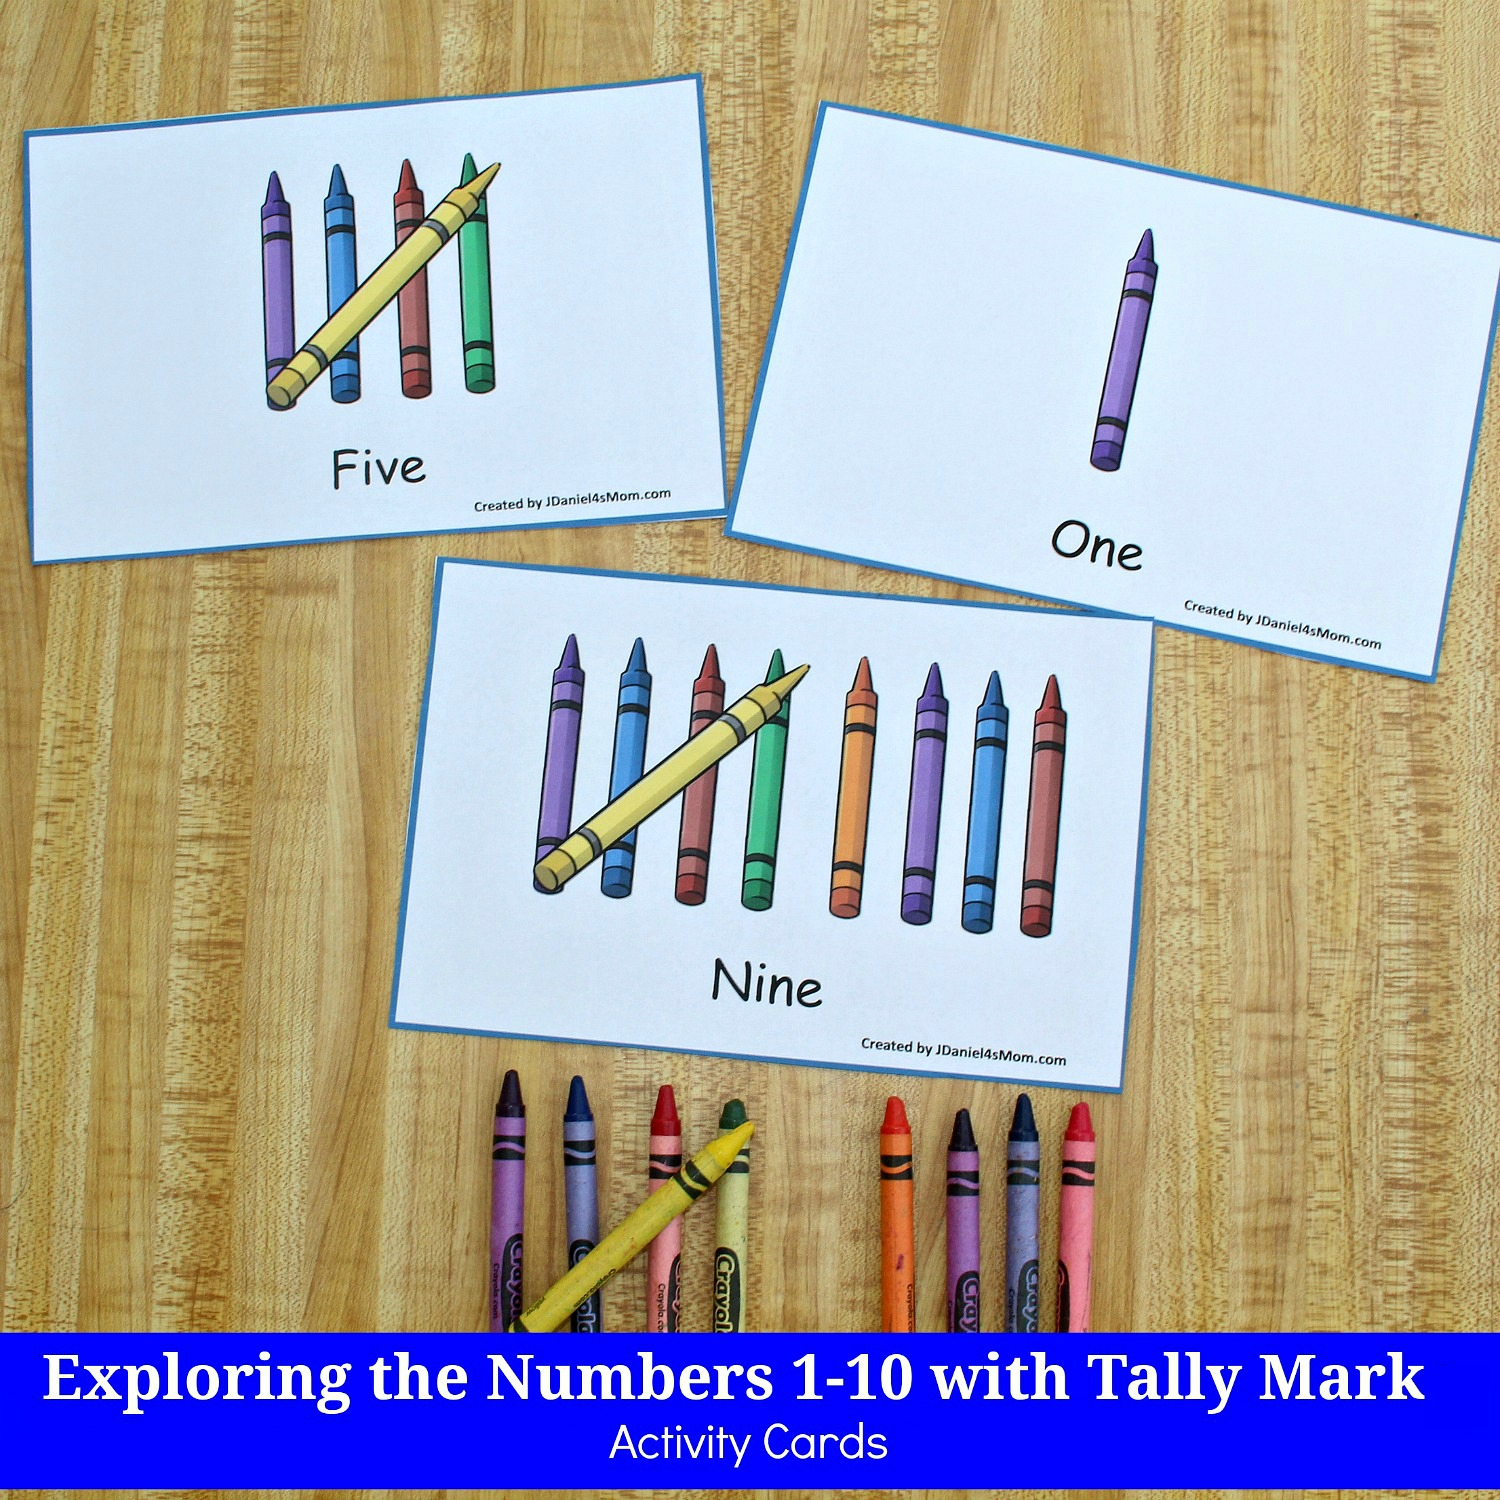 Exploring the Numbers 1-10 with Tally Mark STEM Activity Cards